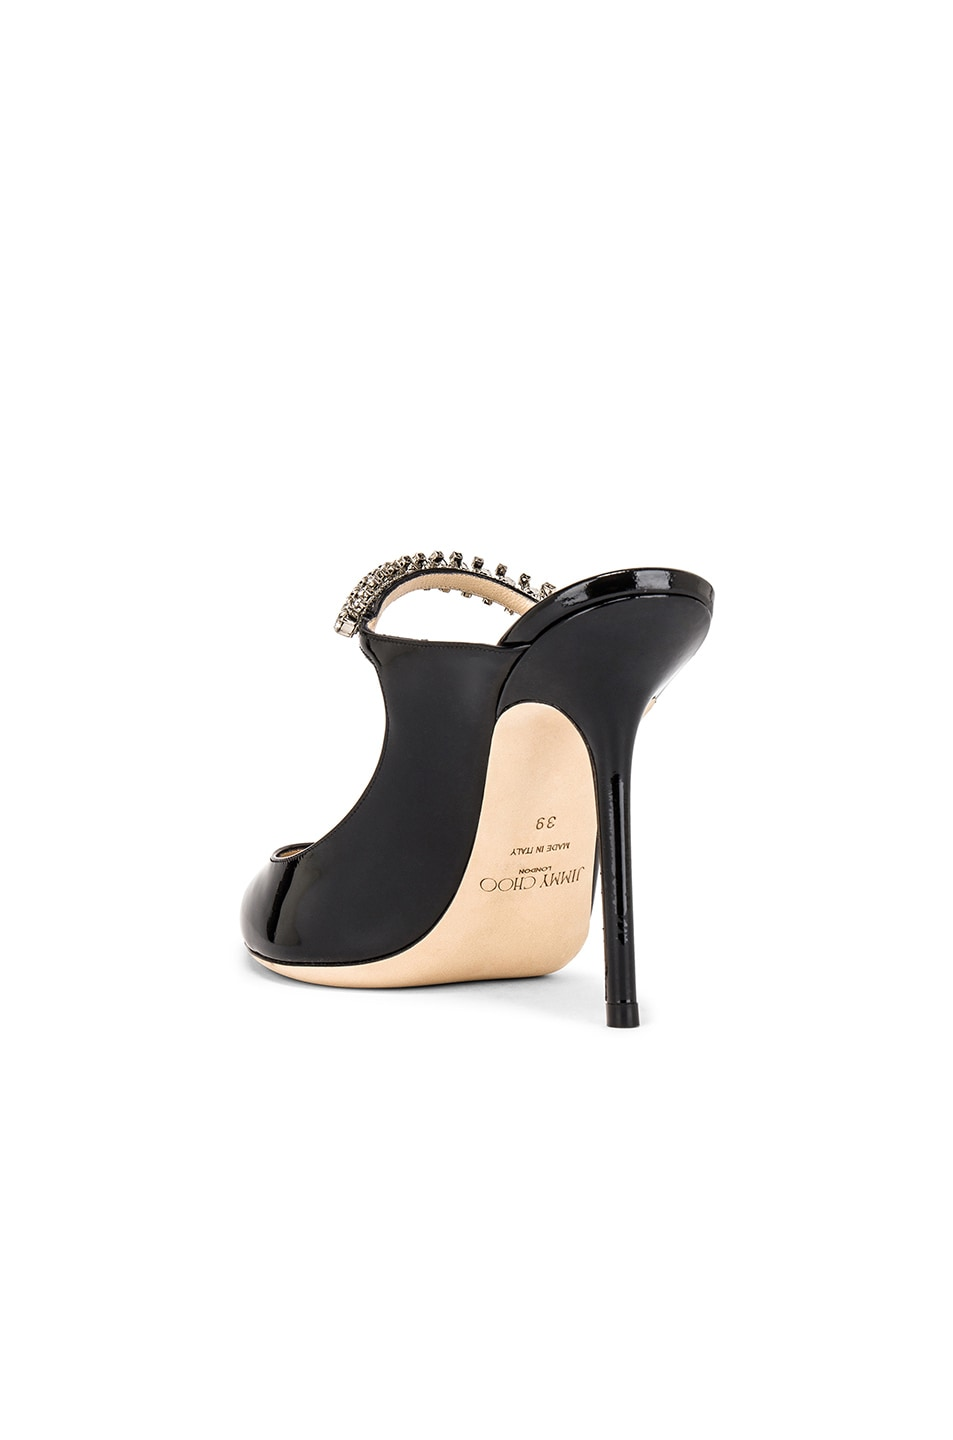 Image 3 of Jimmy Choo Bing 100 Patent Leather Mule in Black